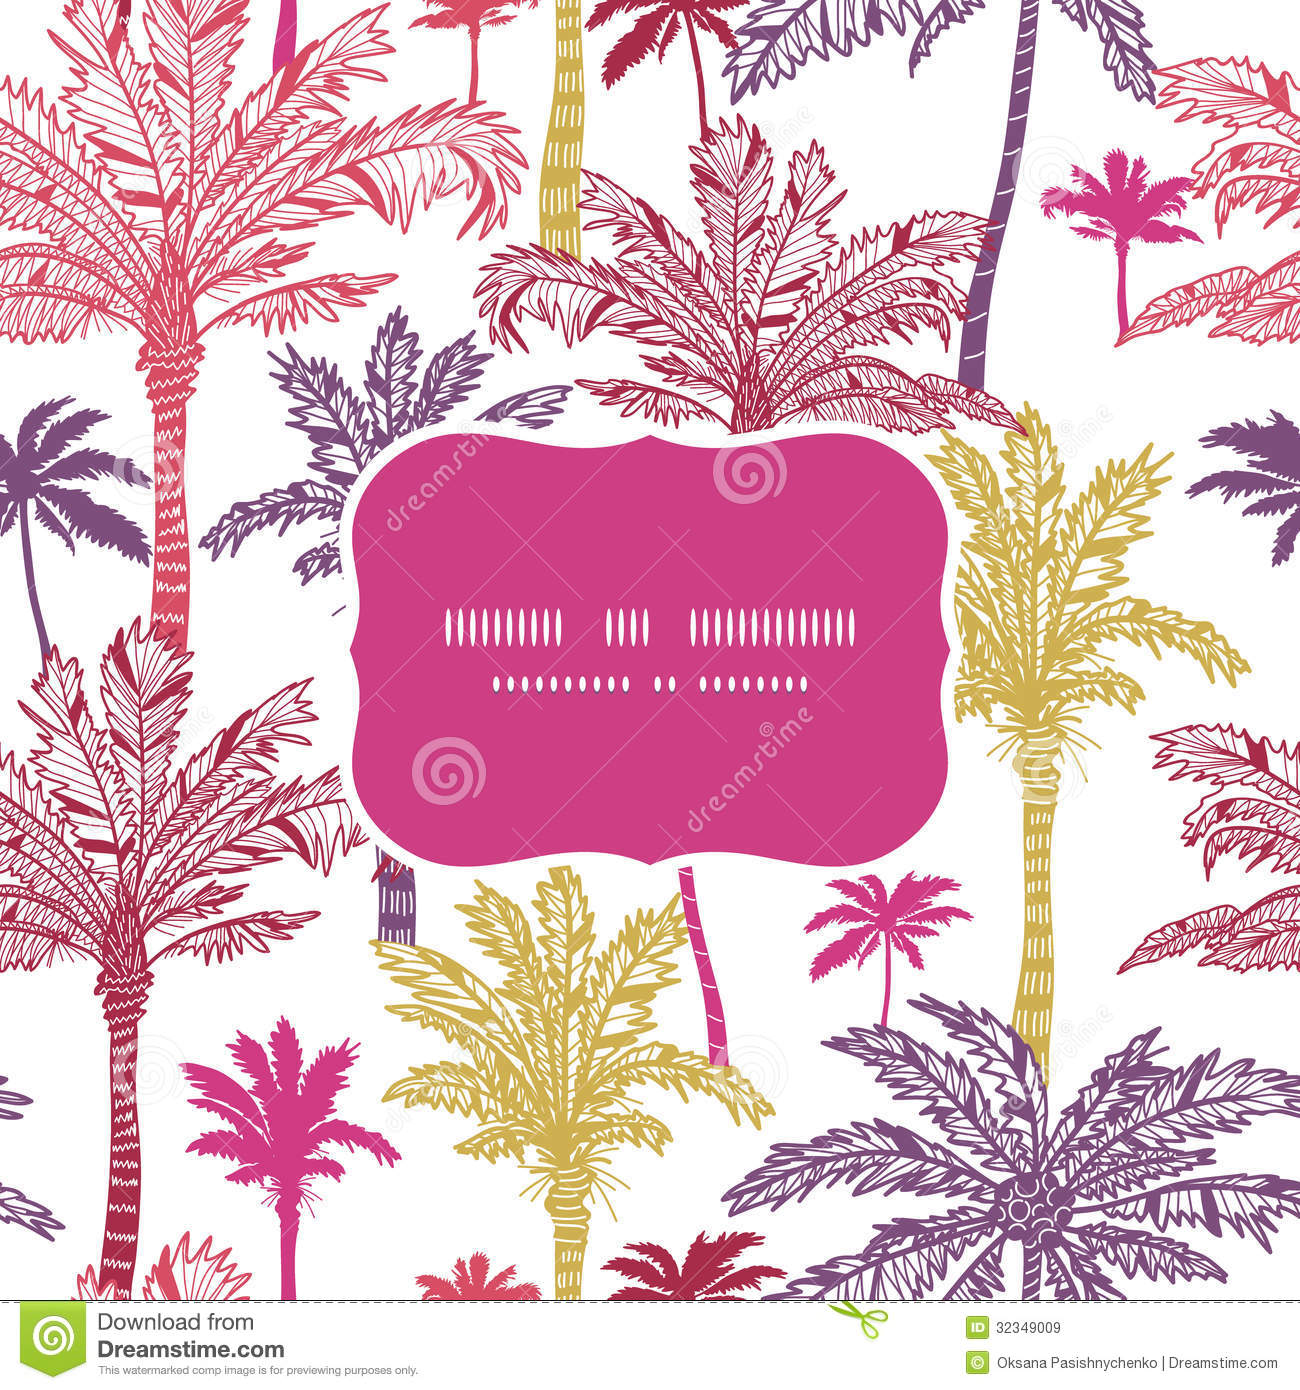 Palm Trees Seamless Frame Pattern Background Royalty Free Stock Images ... Peacock Pattern Outline